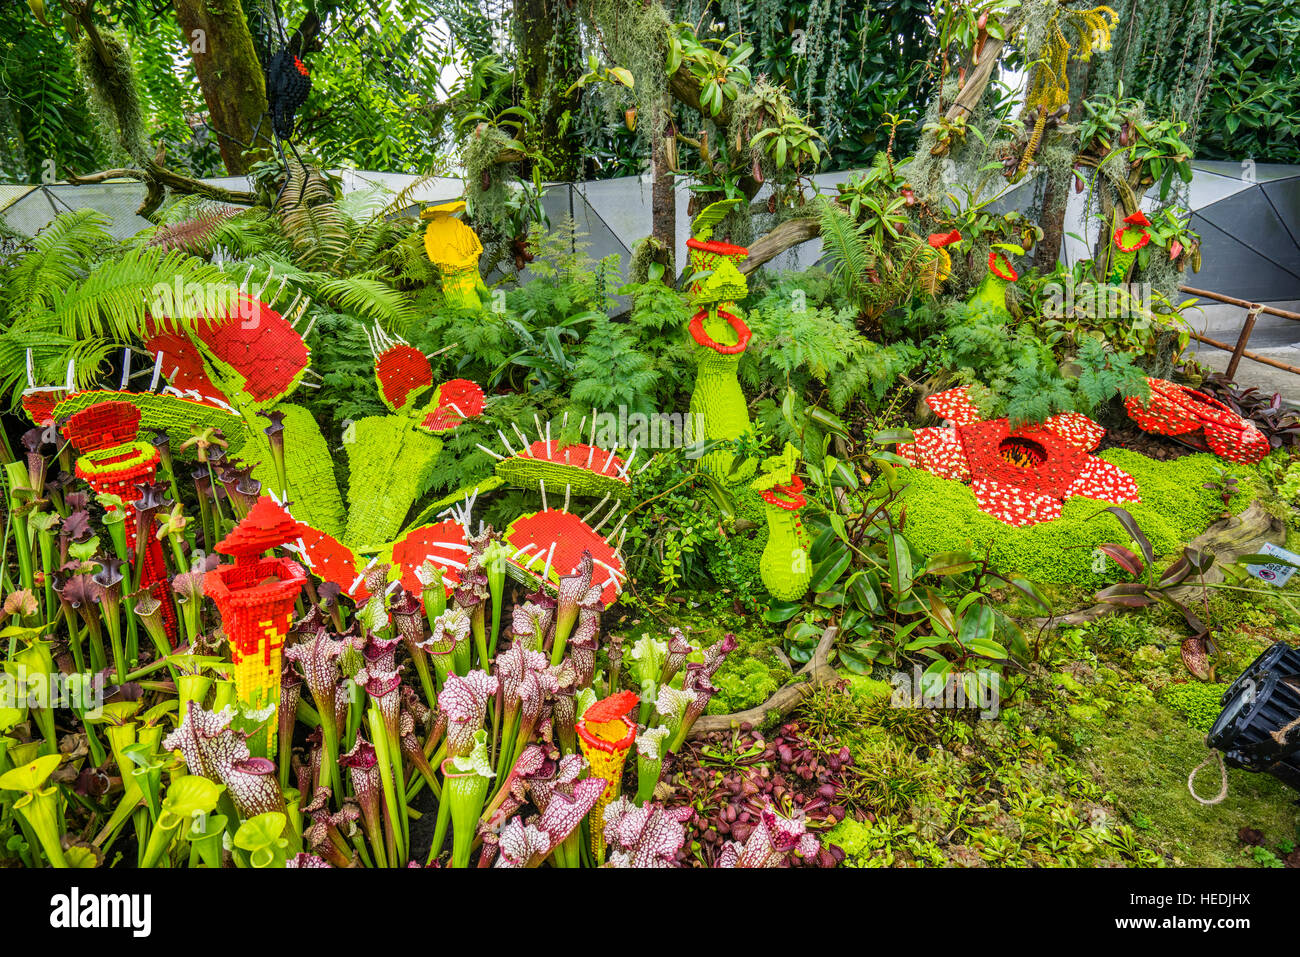 Singapore, Gardens by the Bay, Lego carnivorous plants at the Cloud Forest green house - Stock Image